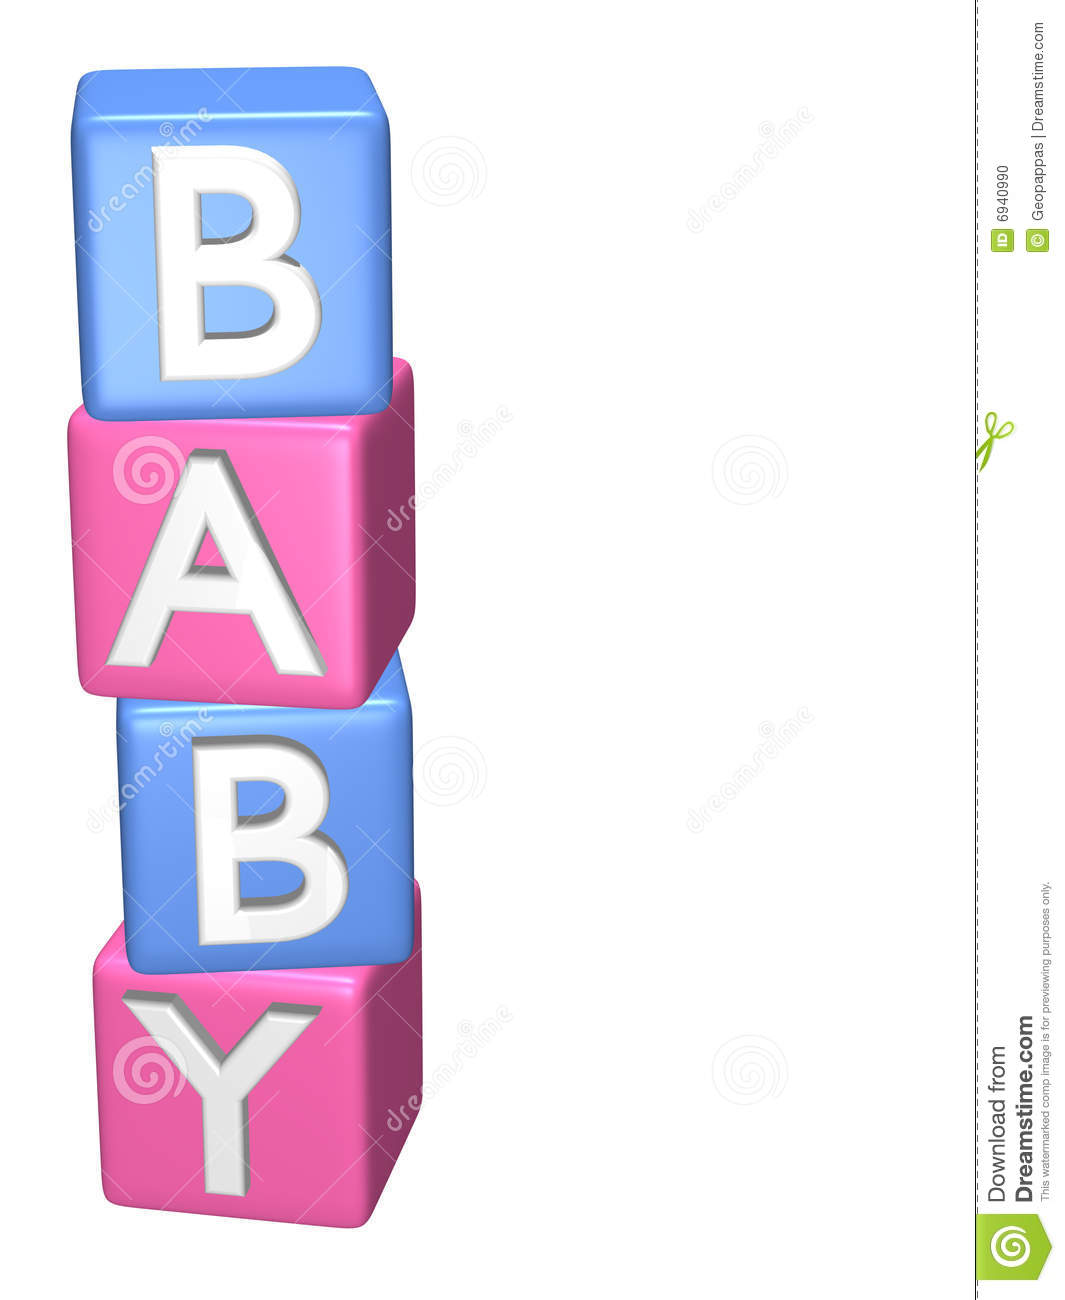 Baby Blocks Toys : Baby toy building blocks stock photo image